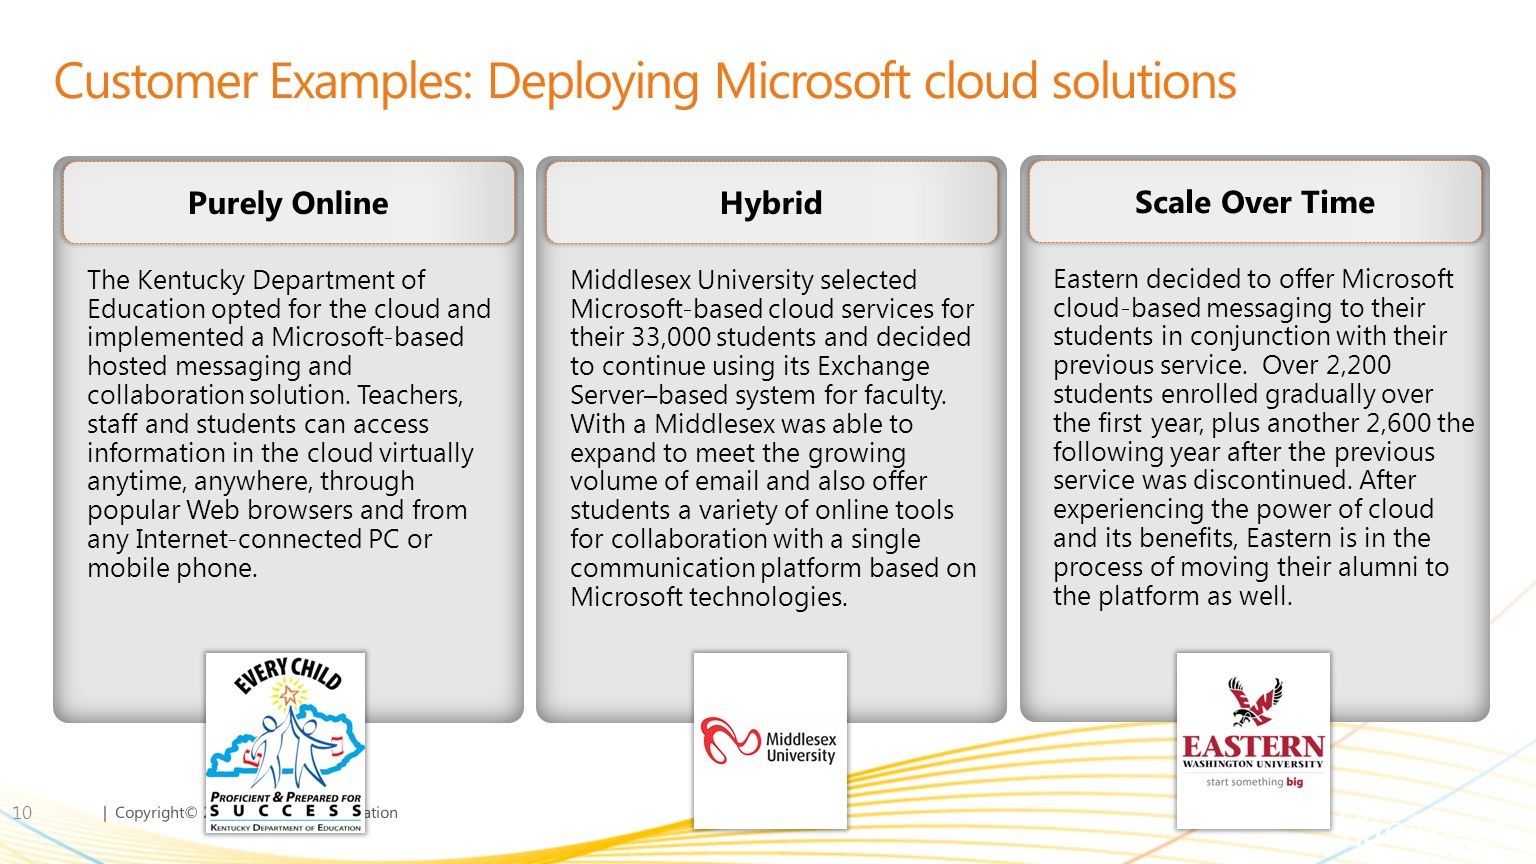 Customer Examples: Deploying Microsoft cloud solutions